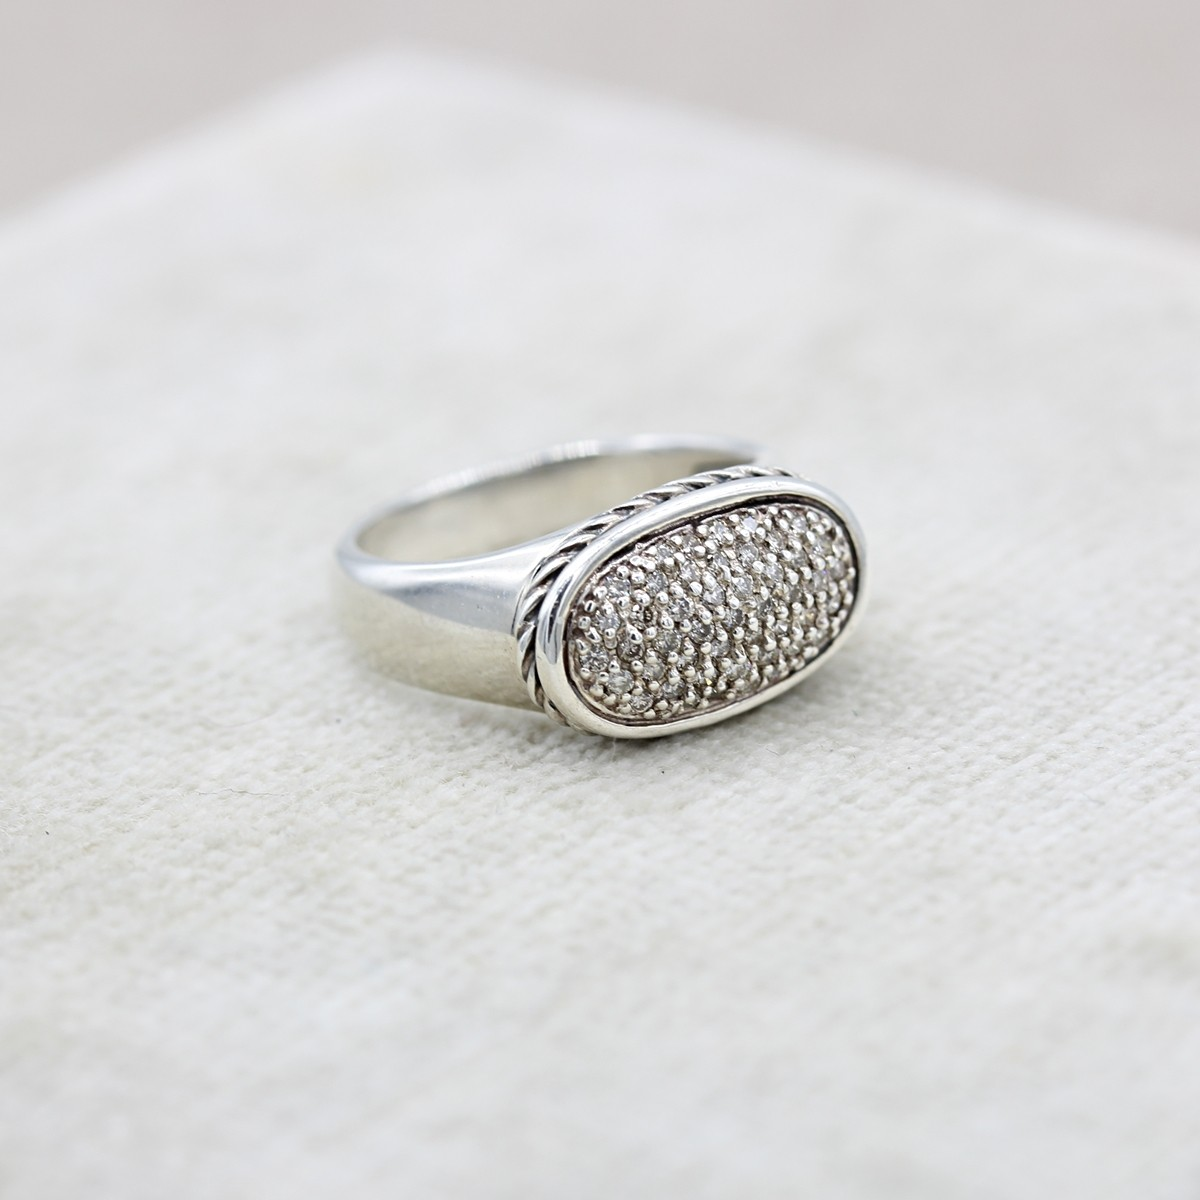 STERLING SILVER DAVID YURMAN RING WITH PAVE SET DIAMONDS